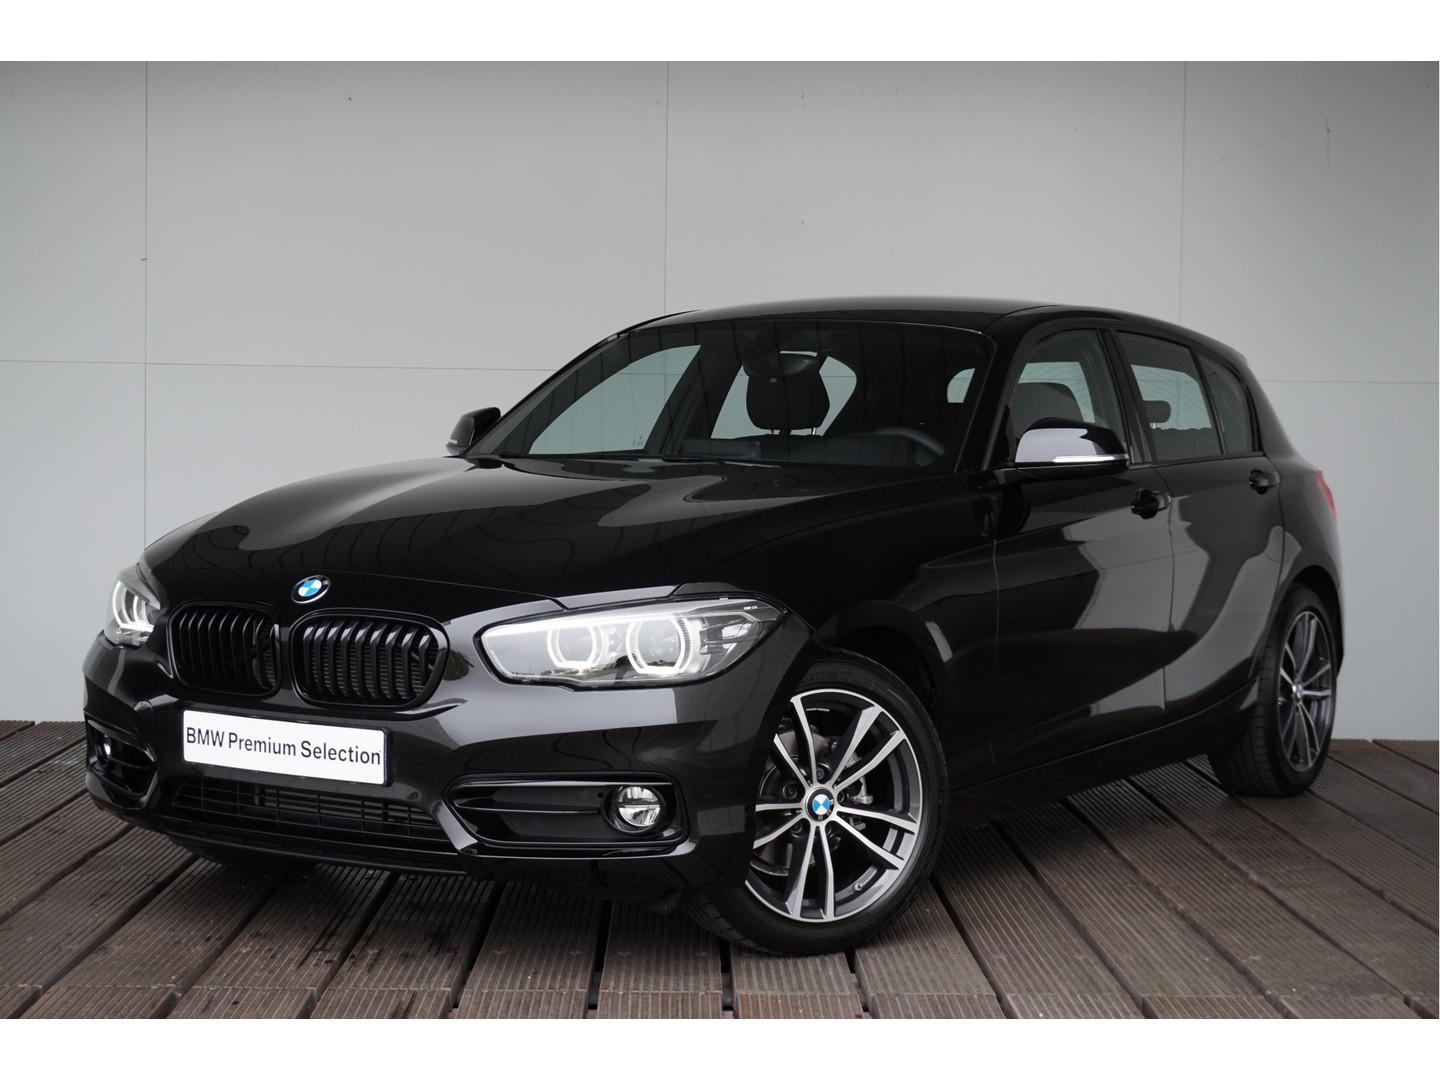 Bmw 1 serie 118i aut. 5-deurs executive sport line shadow